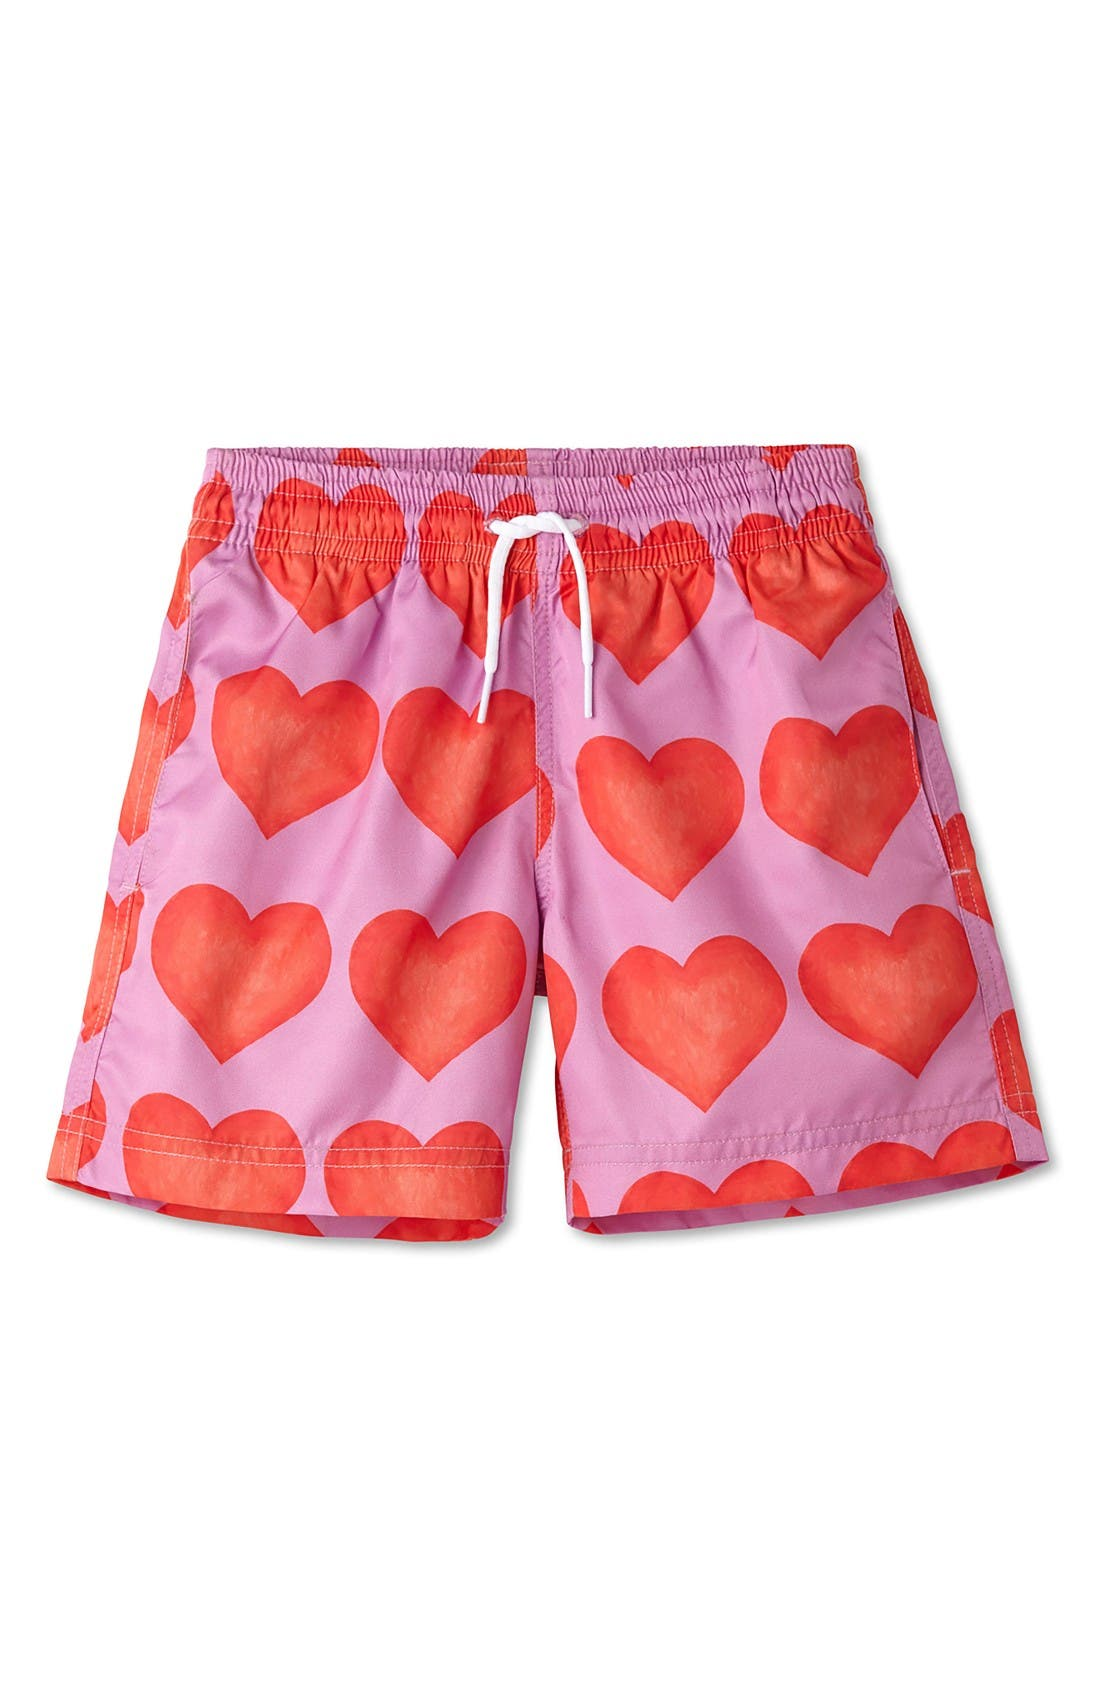 Alternate Image 1 Selected - Stella Cove Heart Print Swim Trunks (Toddler Boys & Little Boys)